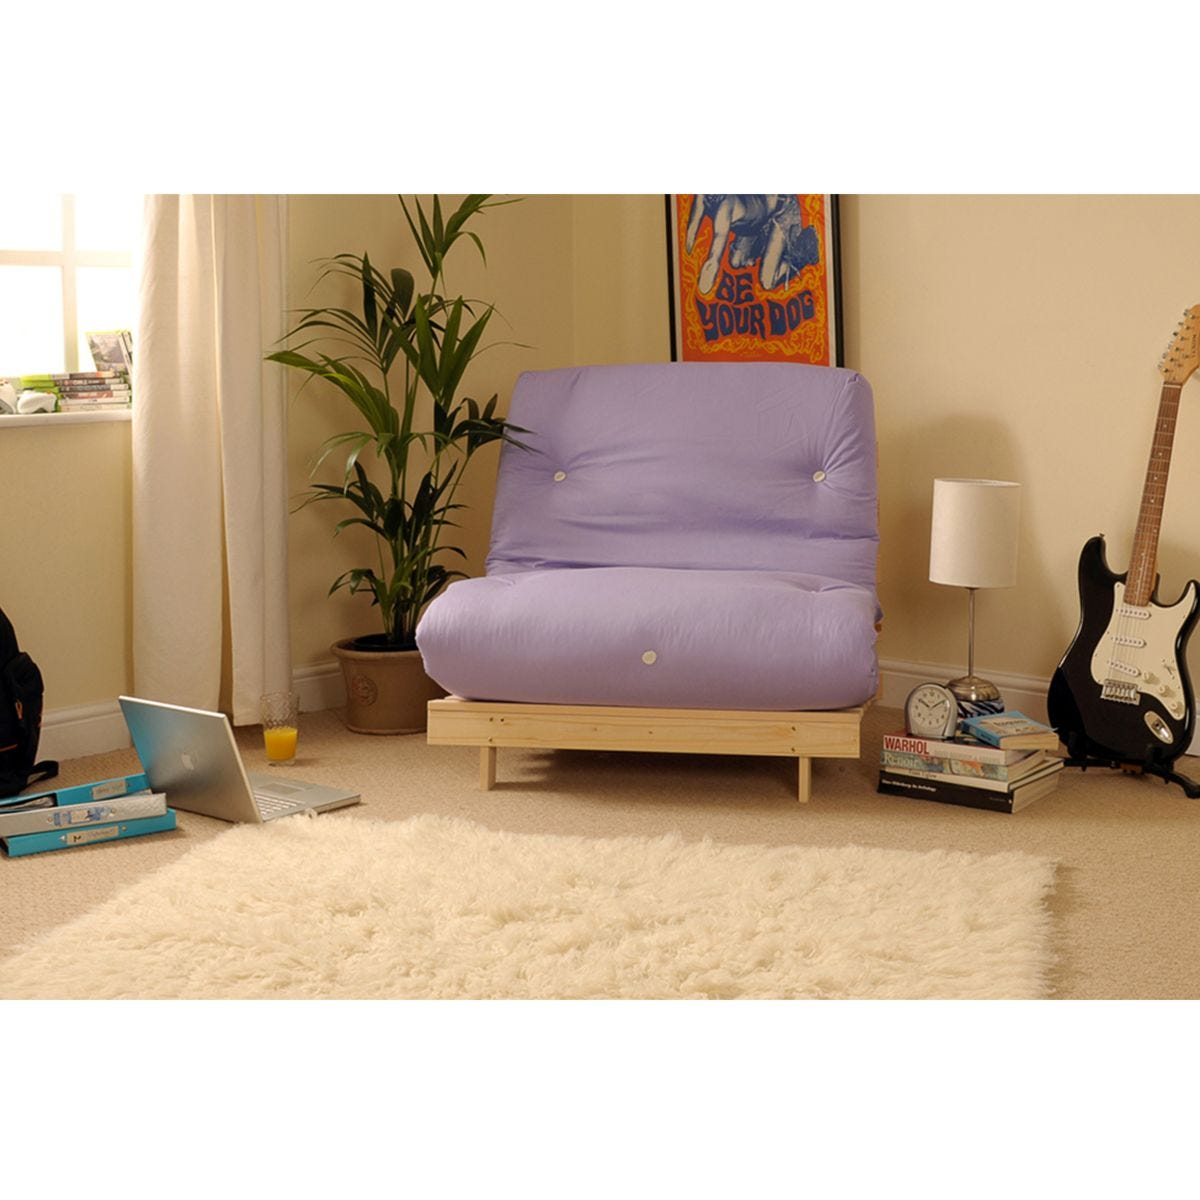 Albury Sofa Bed With Tufted Mattress - Lilac